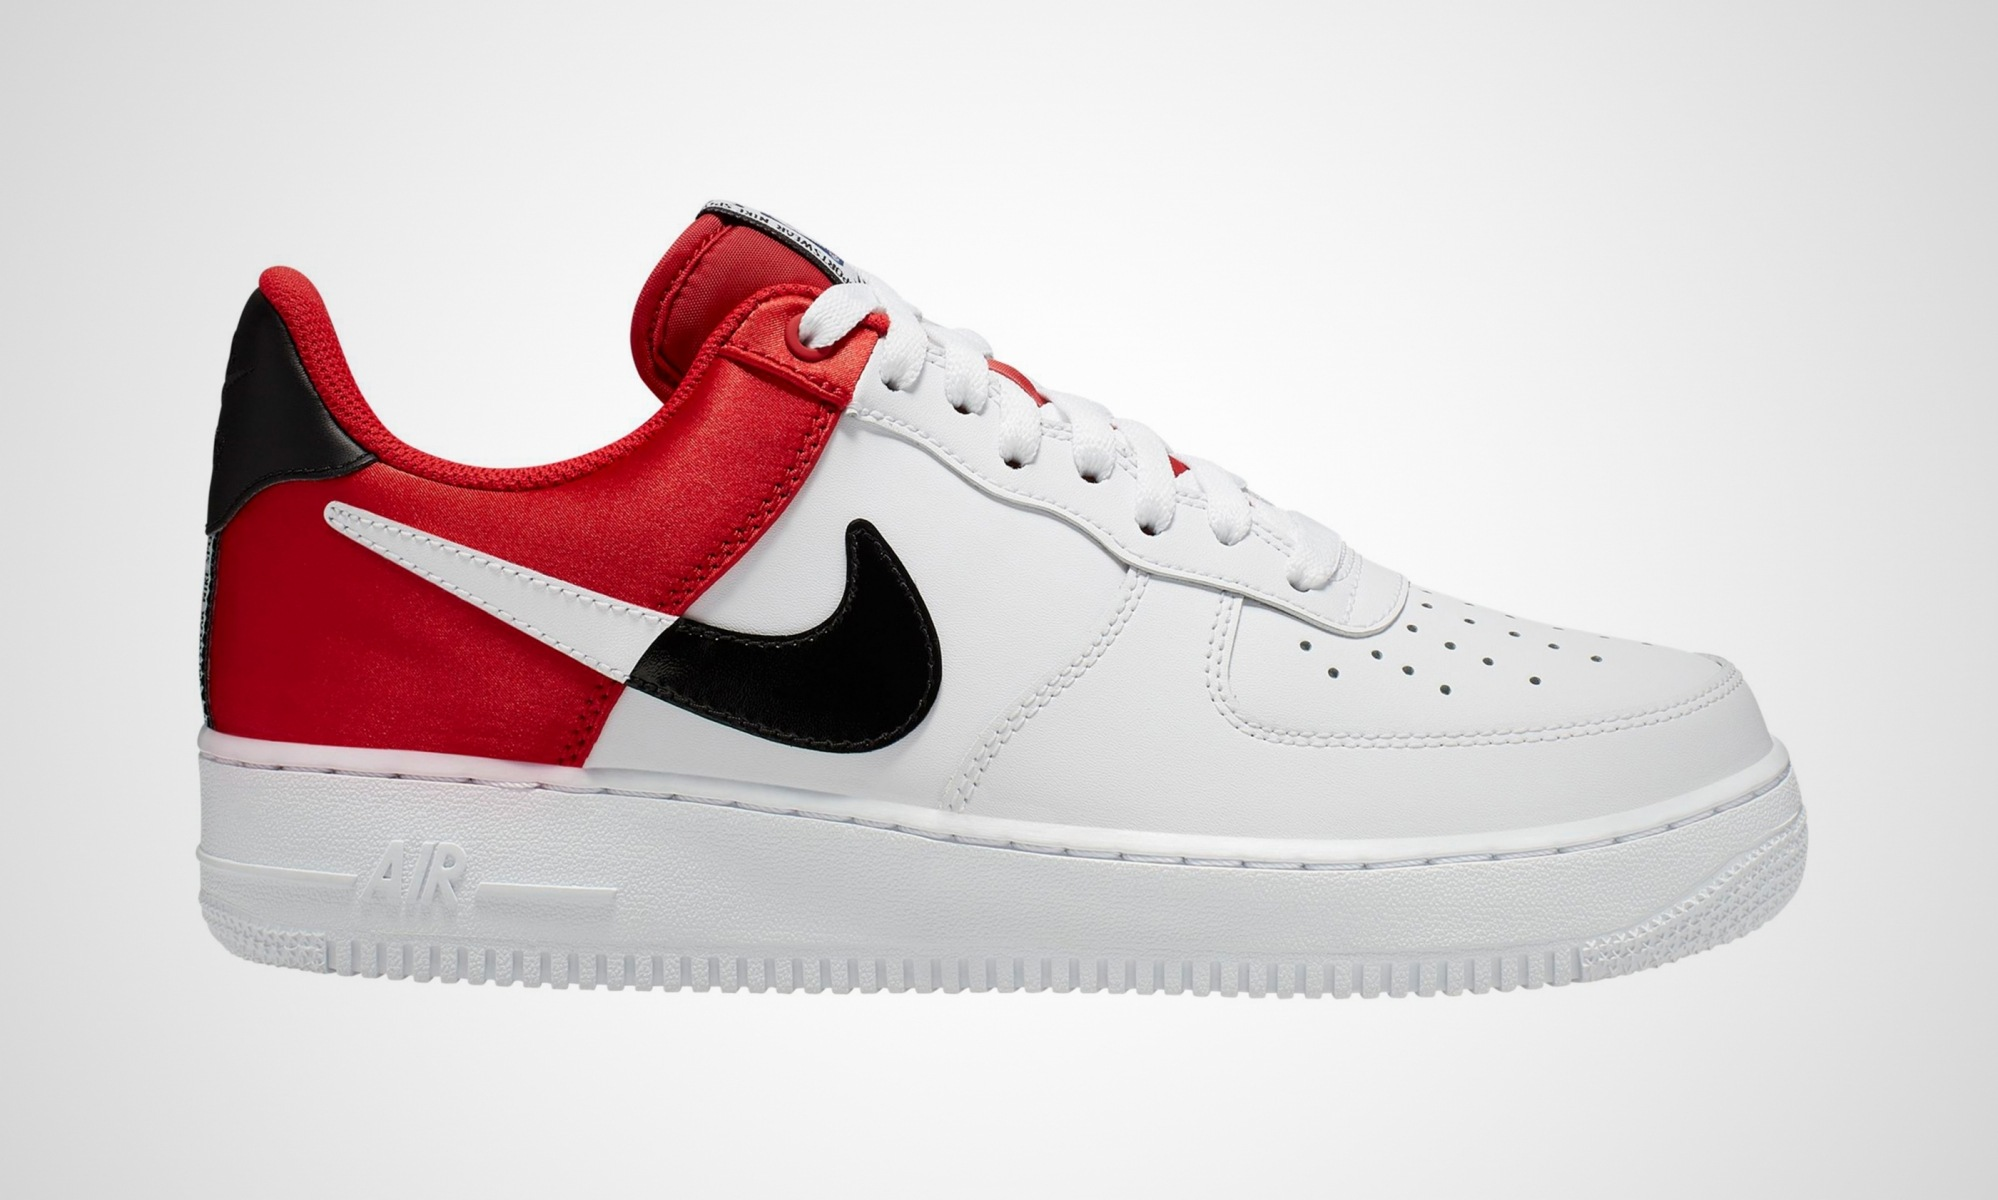 Nike Air Force 1 '07 LV8 Red White